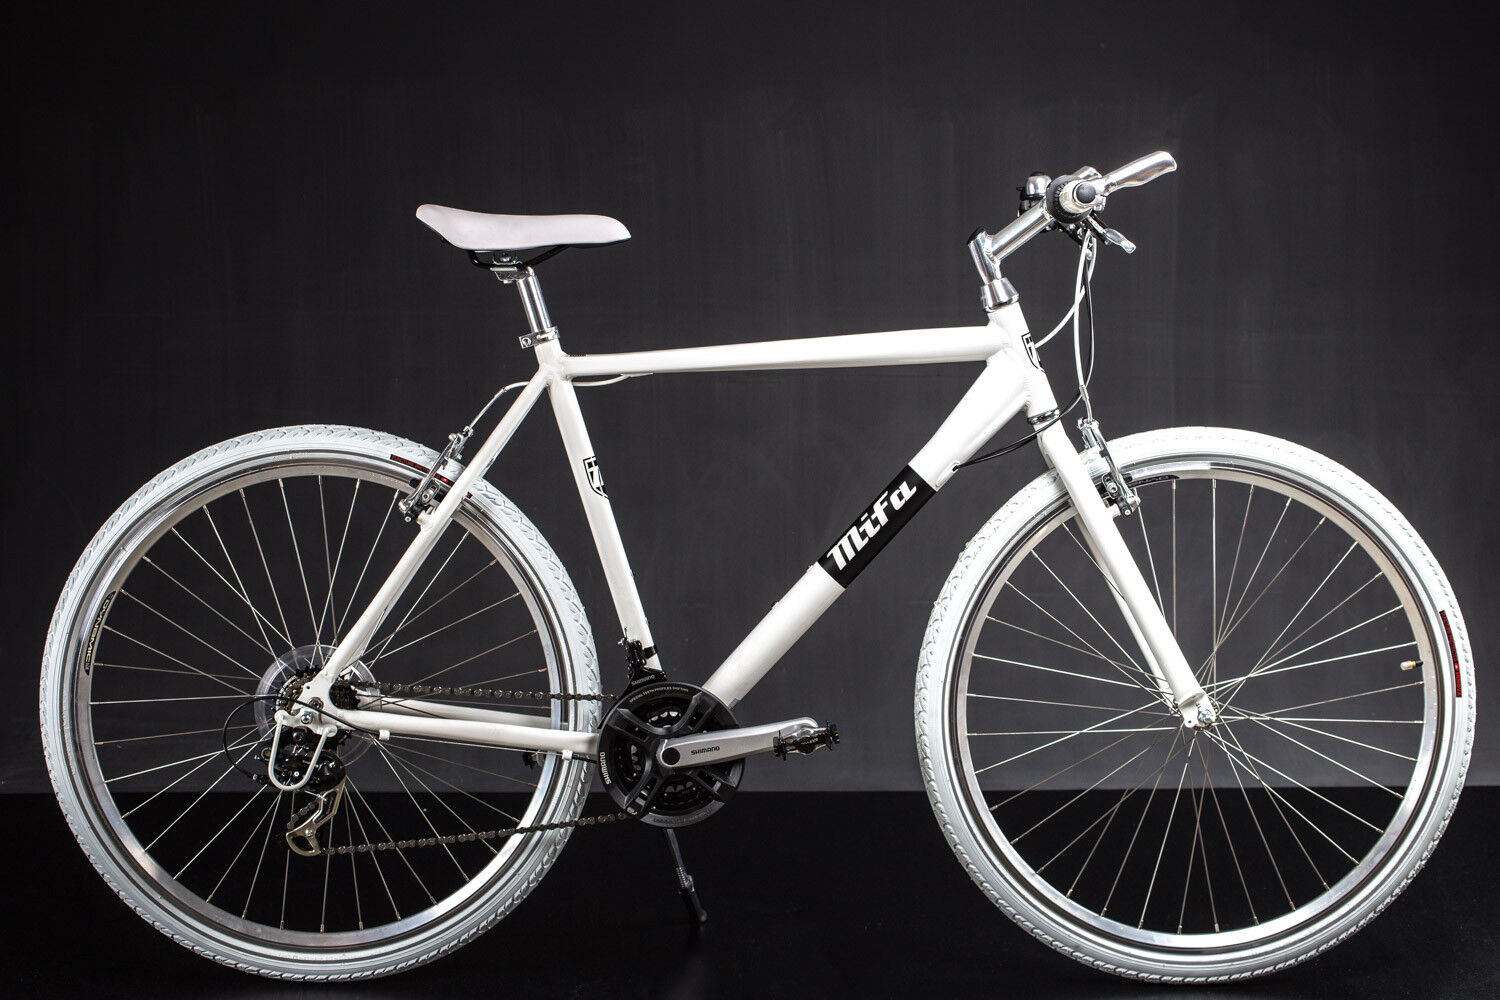 28 zoll crossbike alu mifa herren fahrrad mtb shimano 21 gang weiss ebay. Black Bedroom Furniture Sets. Home Design Ideas